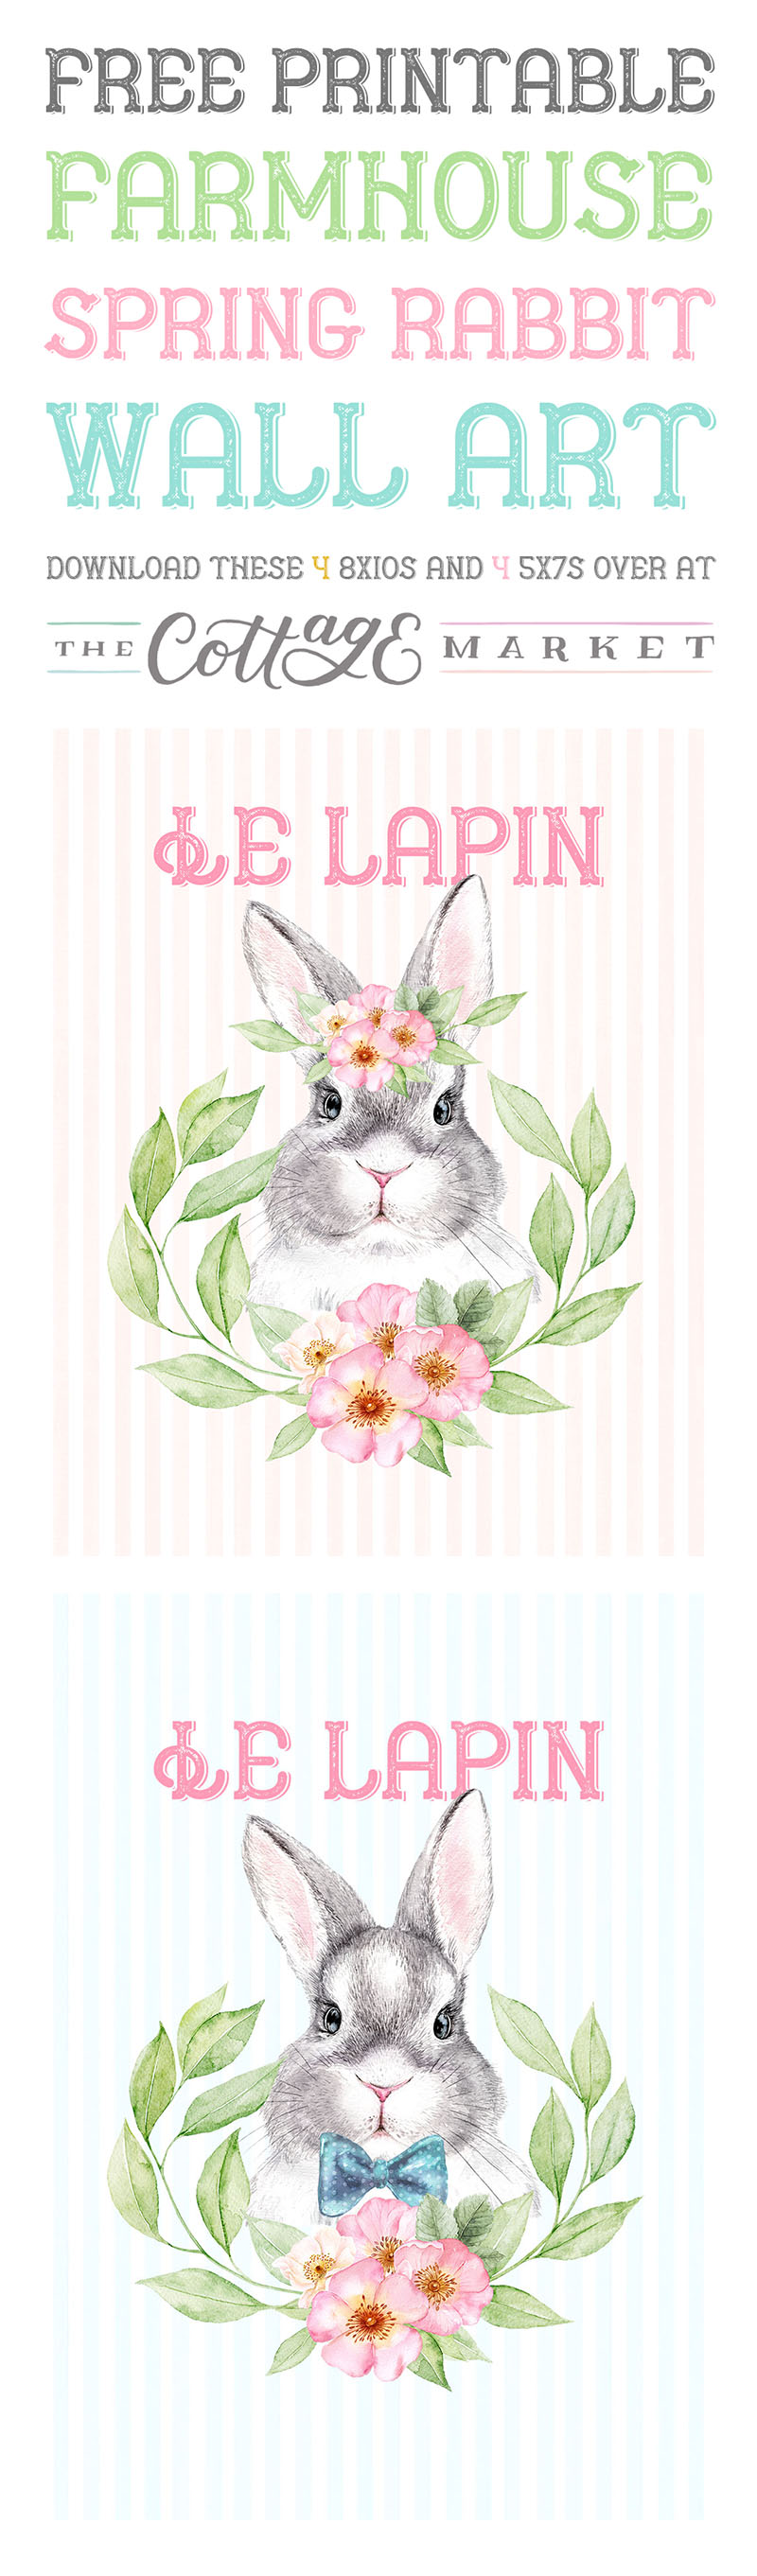 https://thecottagemarket.com/wp-content/uploads/2021/03/TCM-RABBIT-T-1.jpg